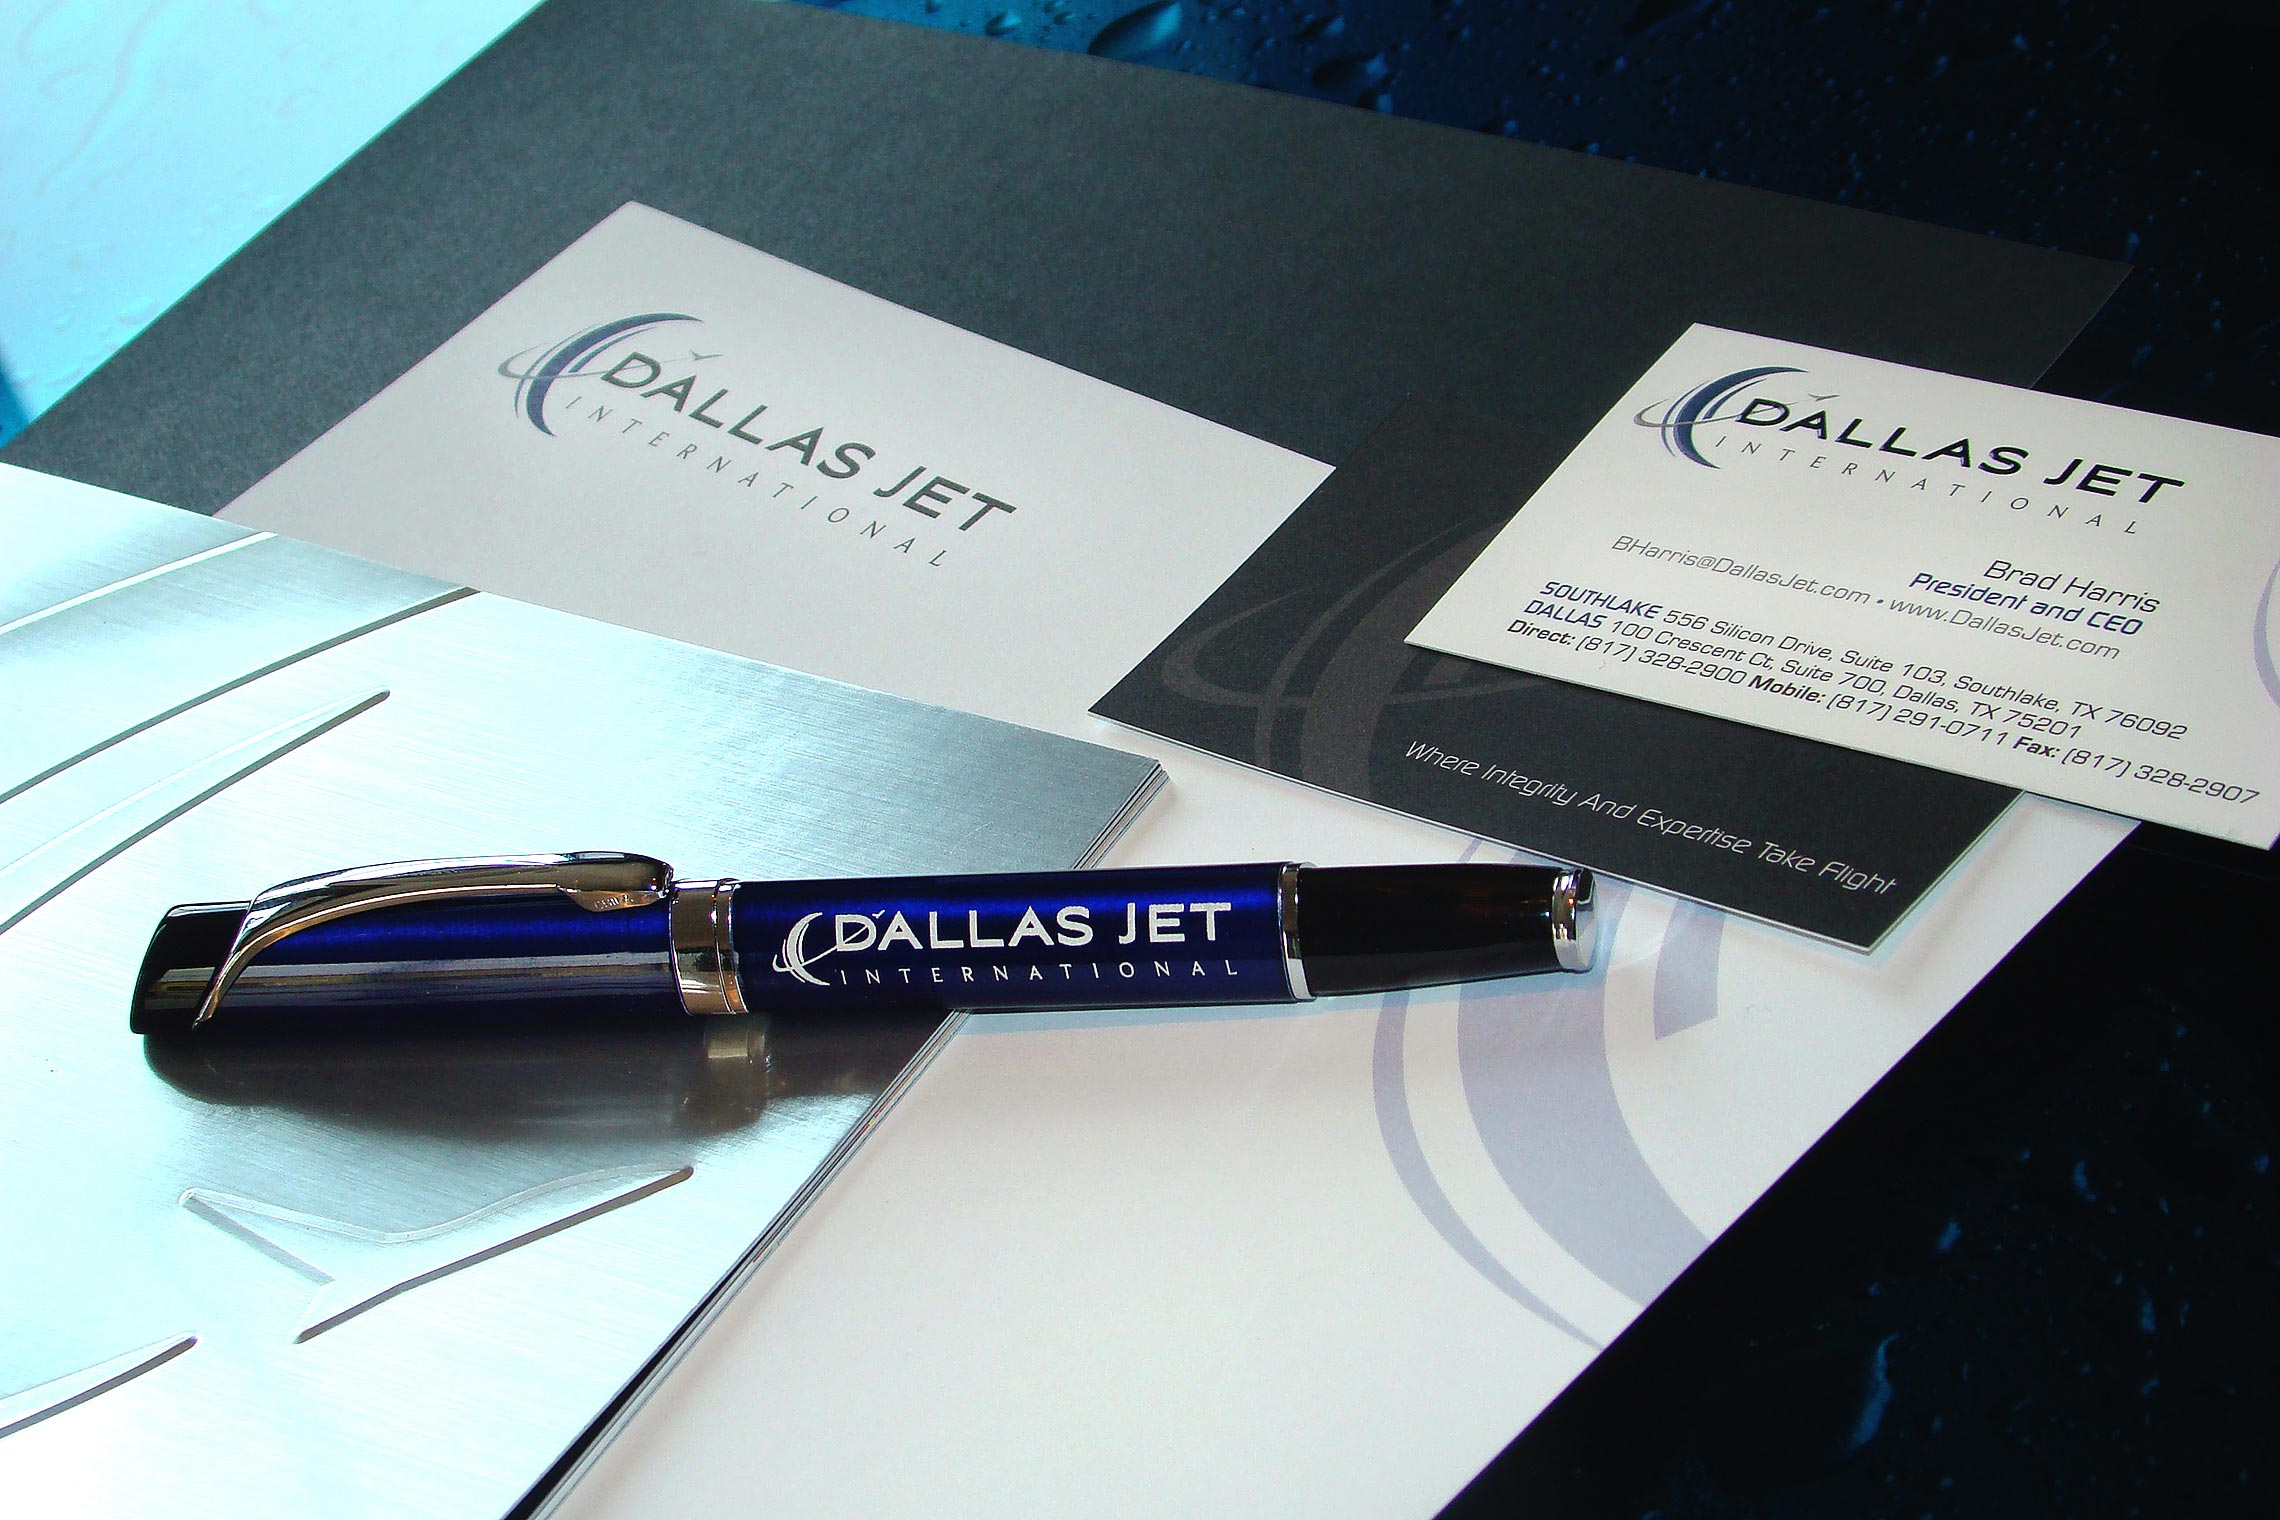 Dallas Jet International Custom Collateral - Brochure, Pen, Business Card and Letterhead